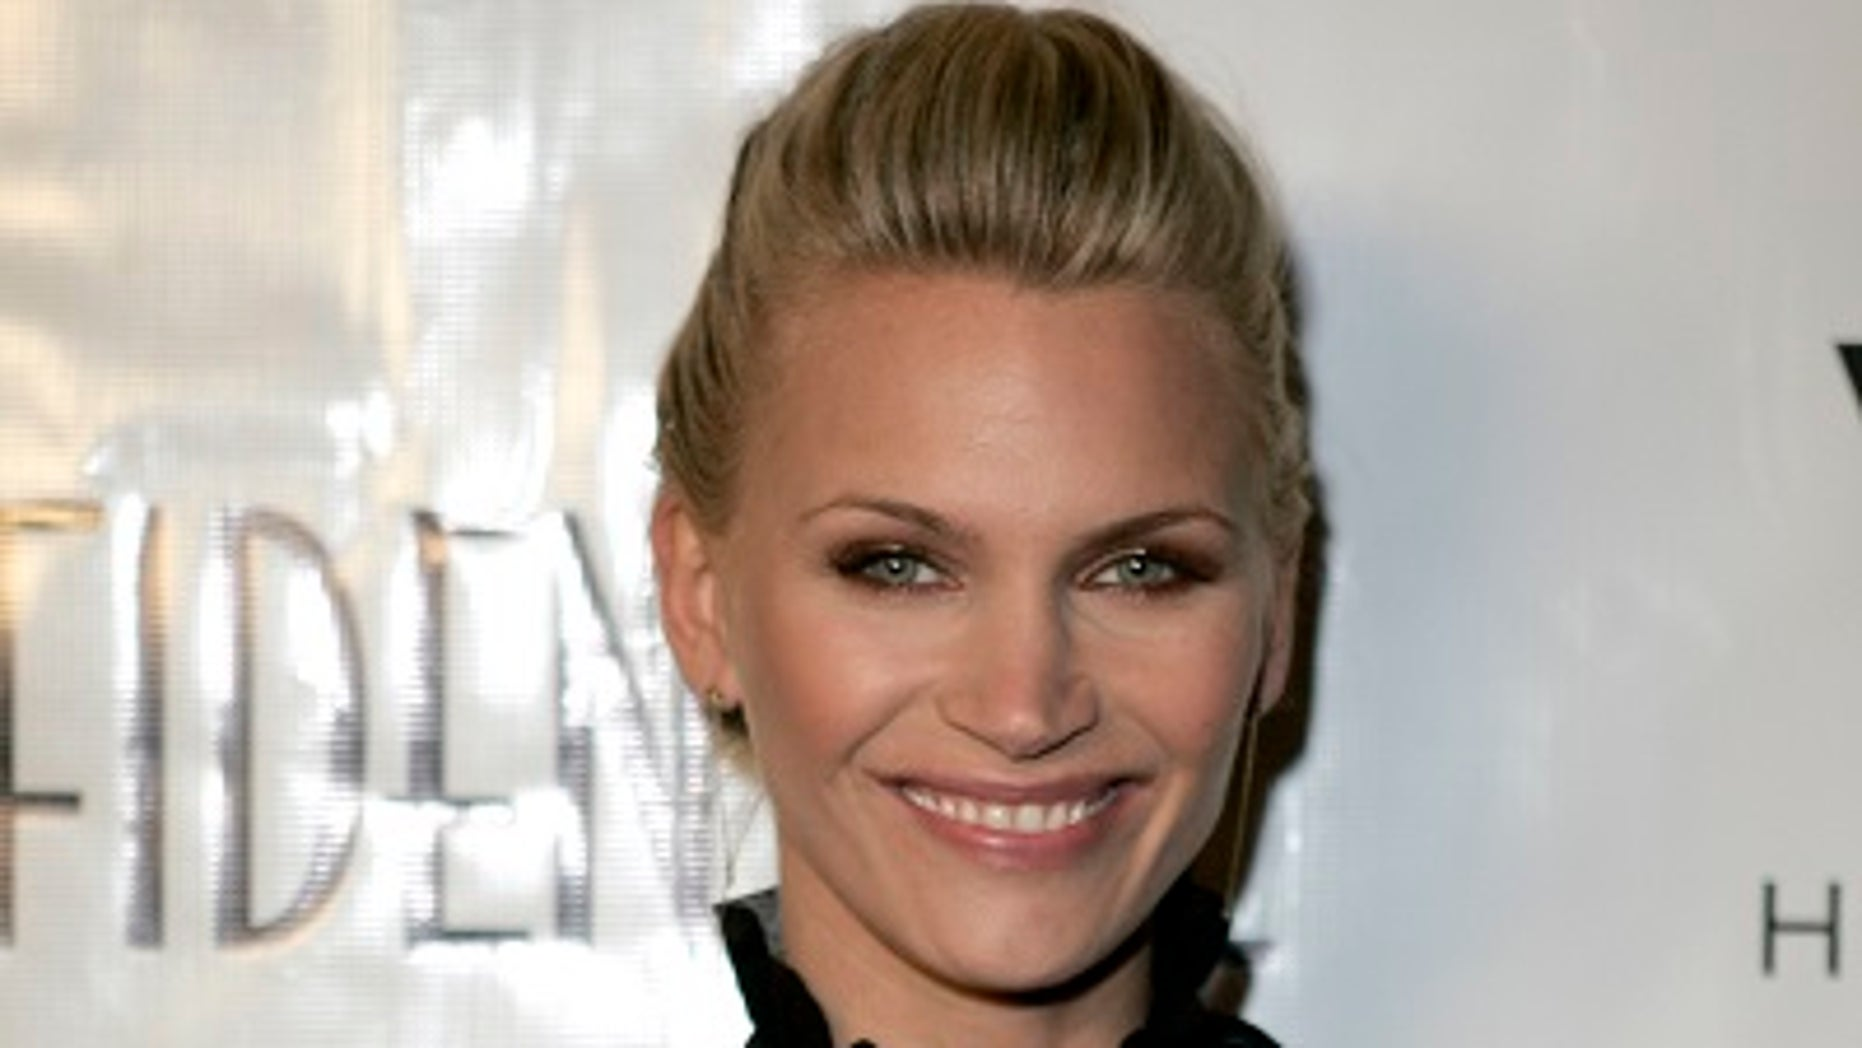 Natasha Henstridge spoke out about director Brett Ratner allegedly sexually assaulting her back in the 1990's.